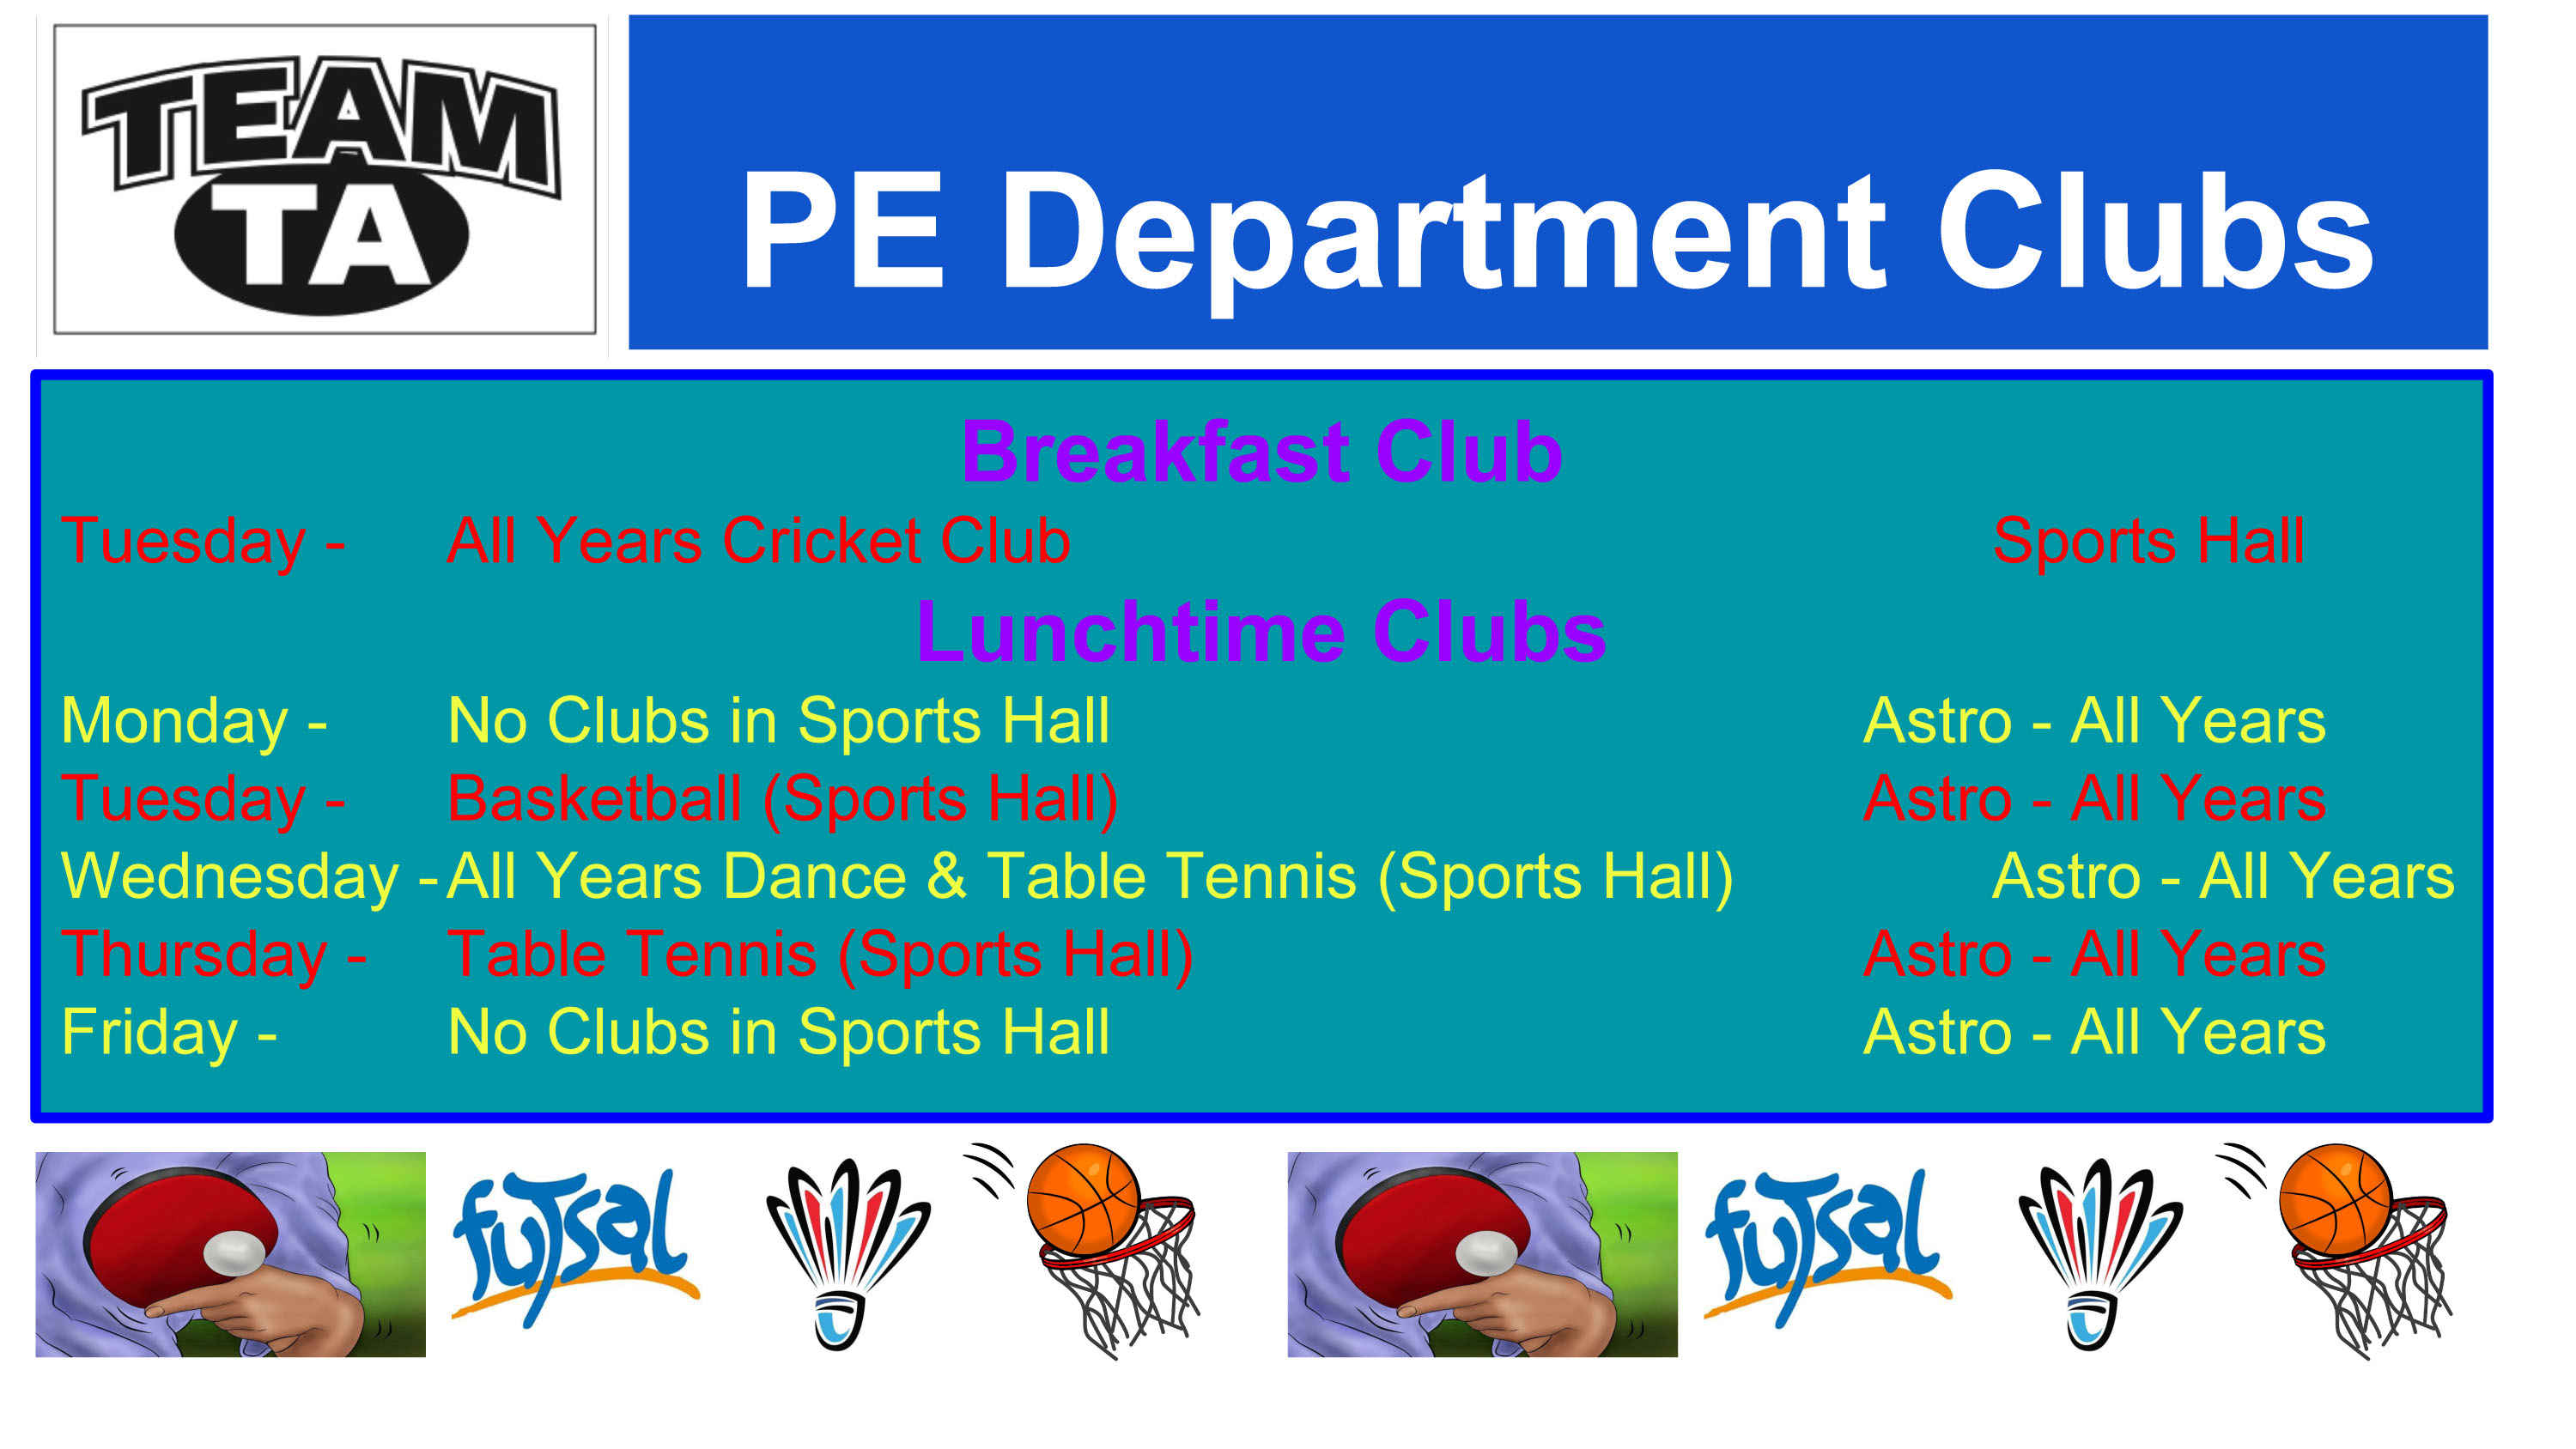 PE Department Clubs 1